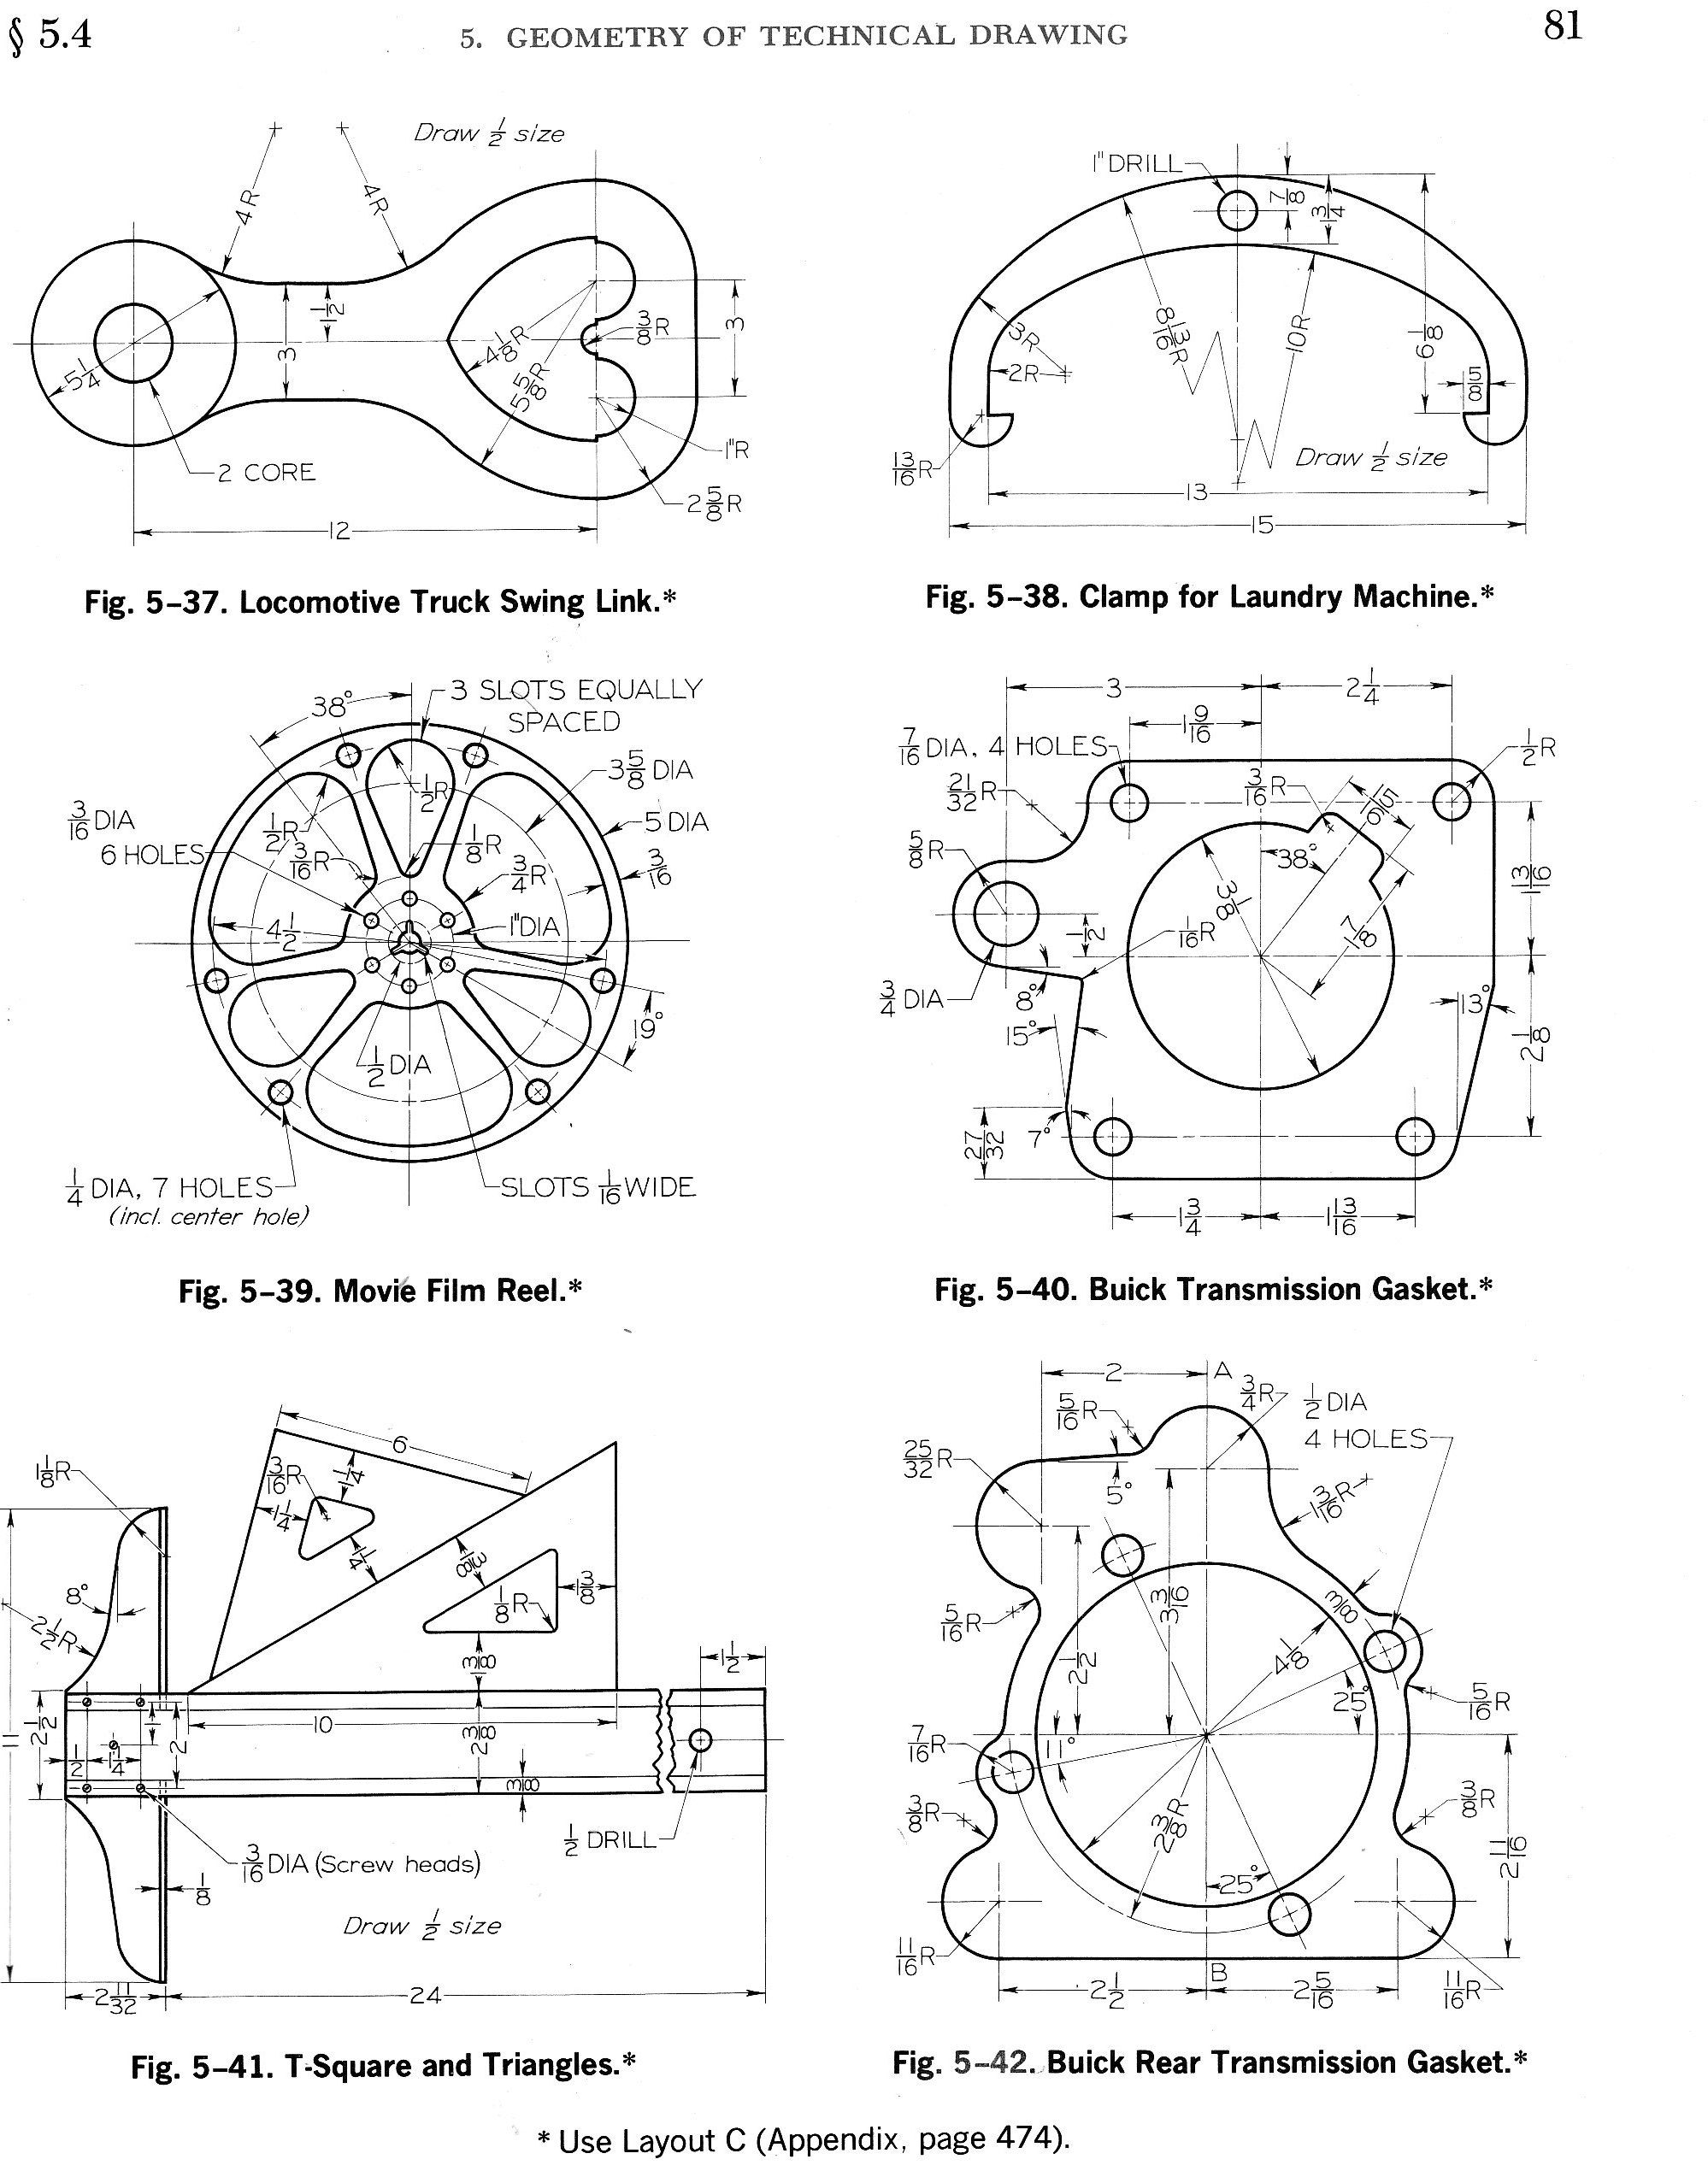 Engineering Drawing Symbols And Their Meanings Pdf At Getdrawings Electrical Template Sample 1998x2540 Collection Of Examples High Quality